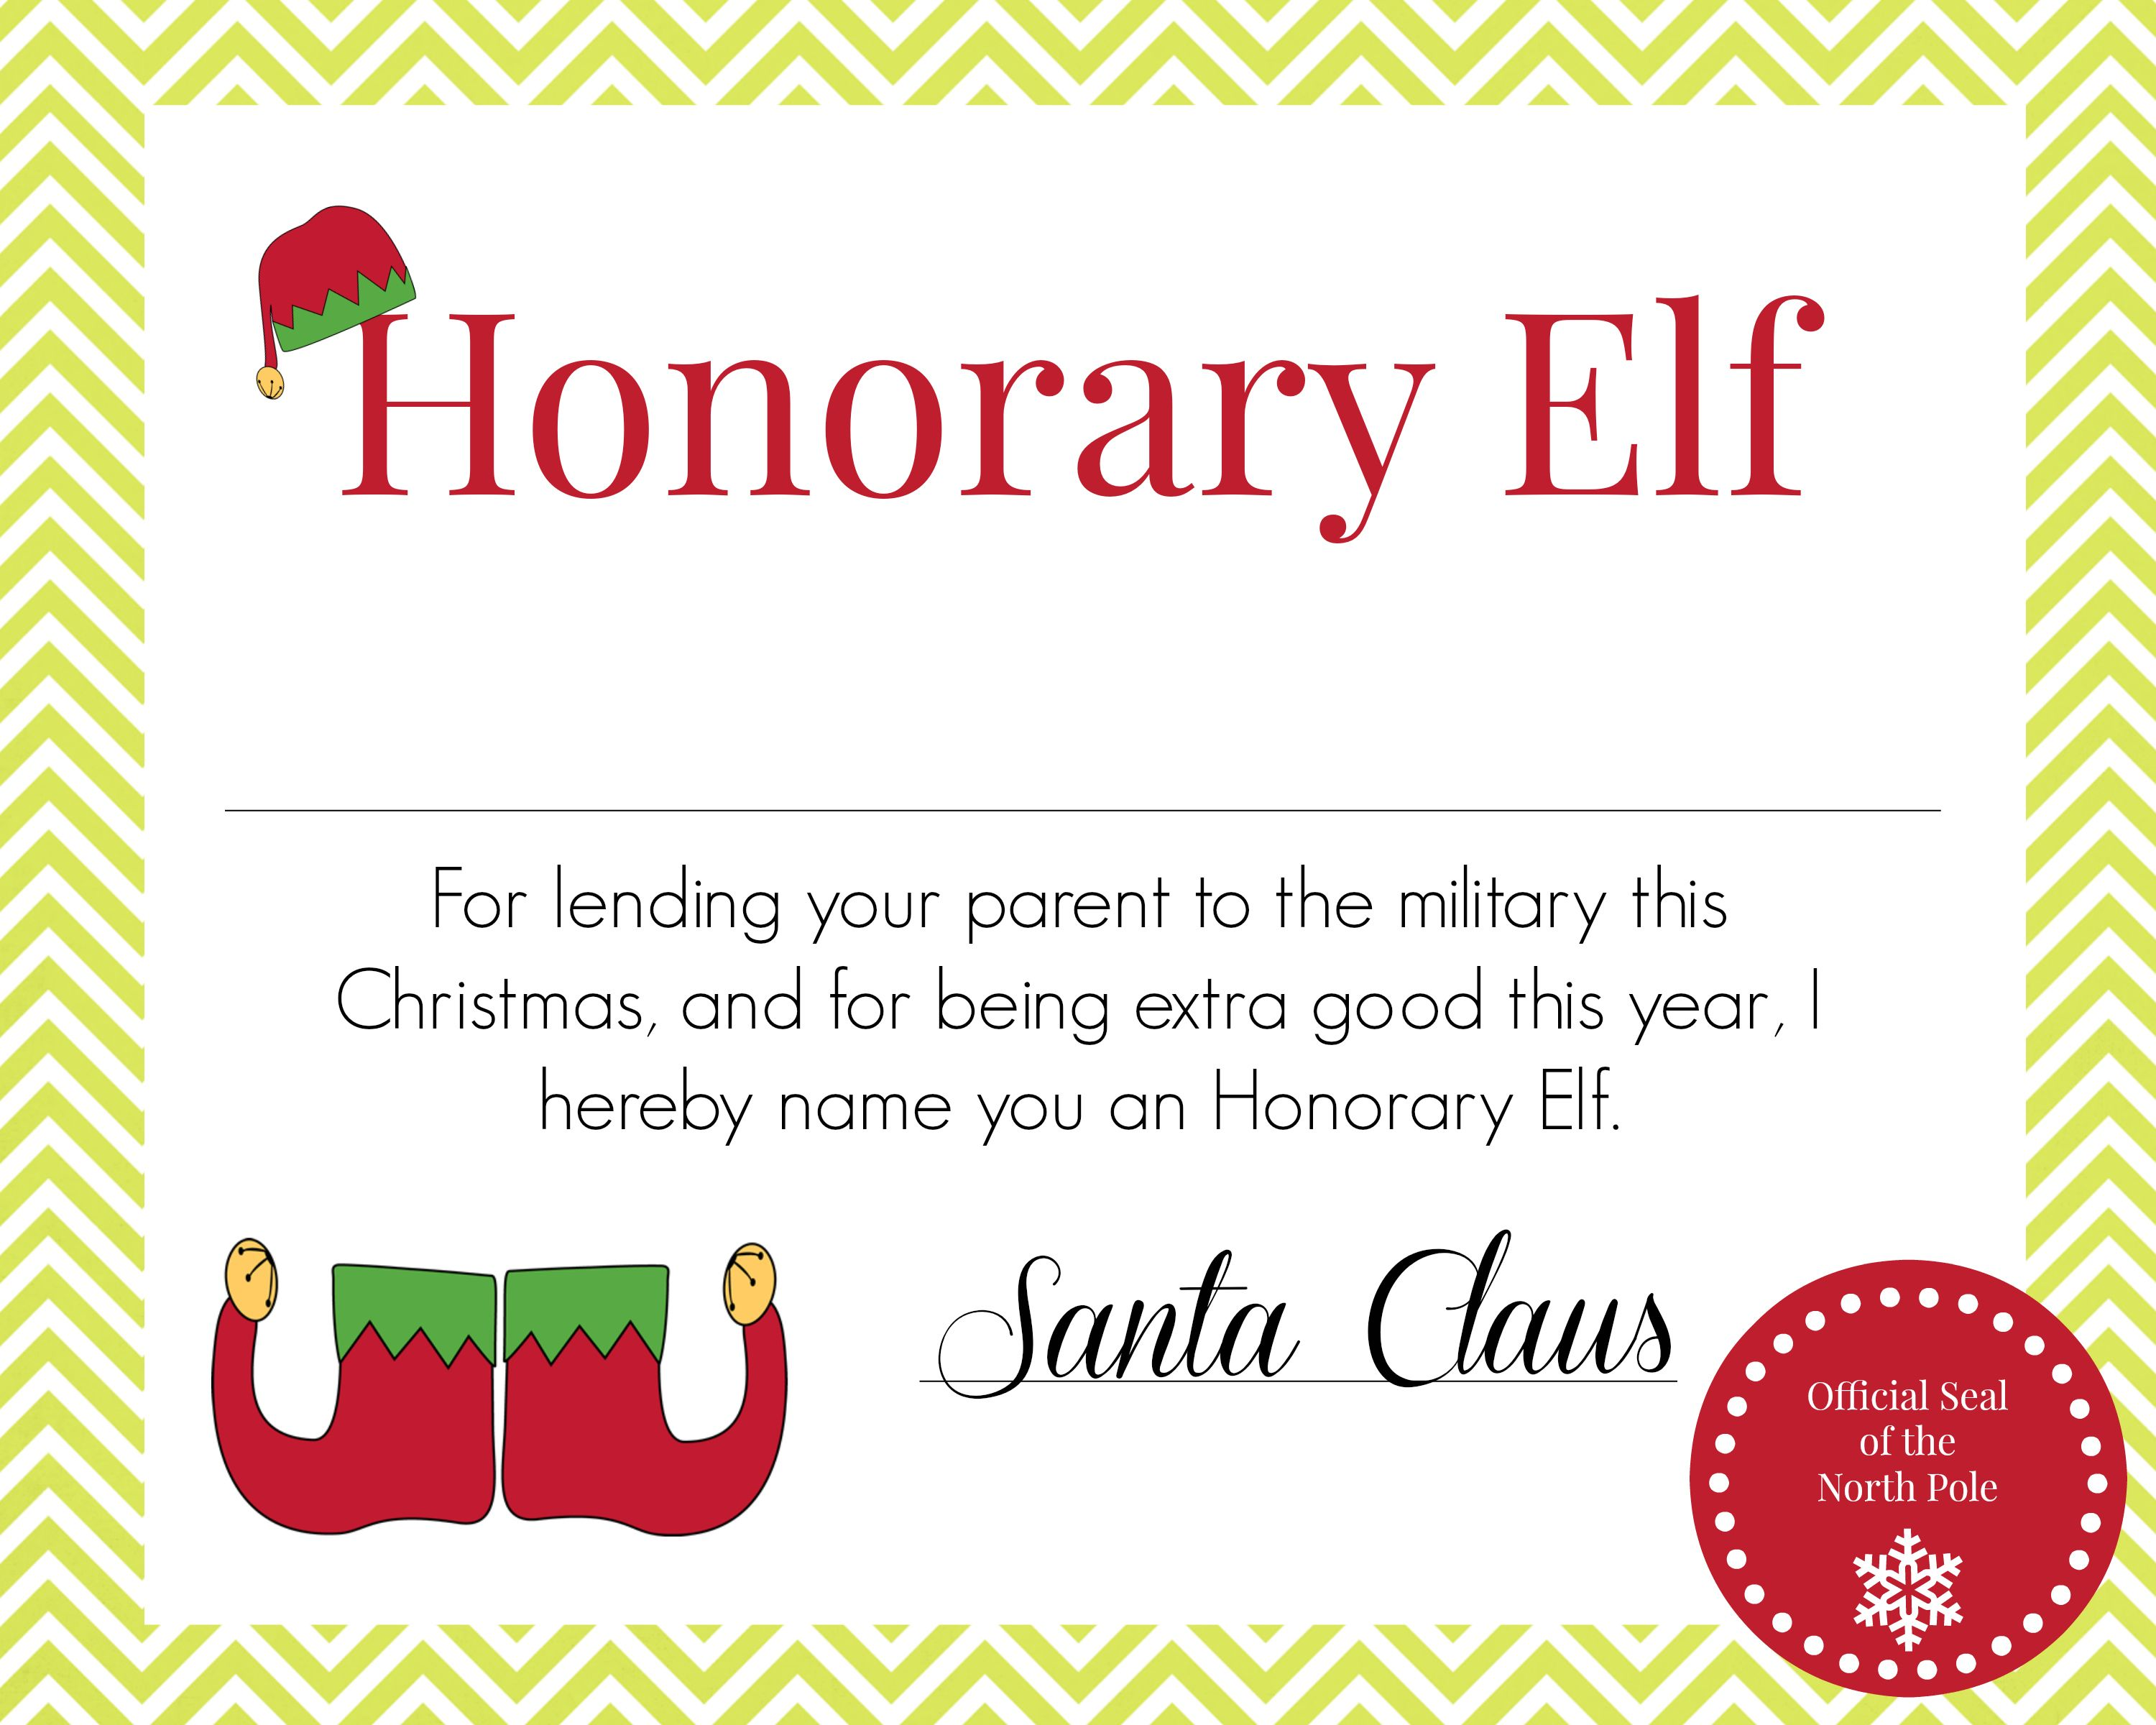 Honorary Elf Certificate For When Parent Is Deployed During